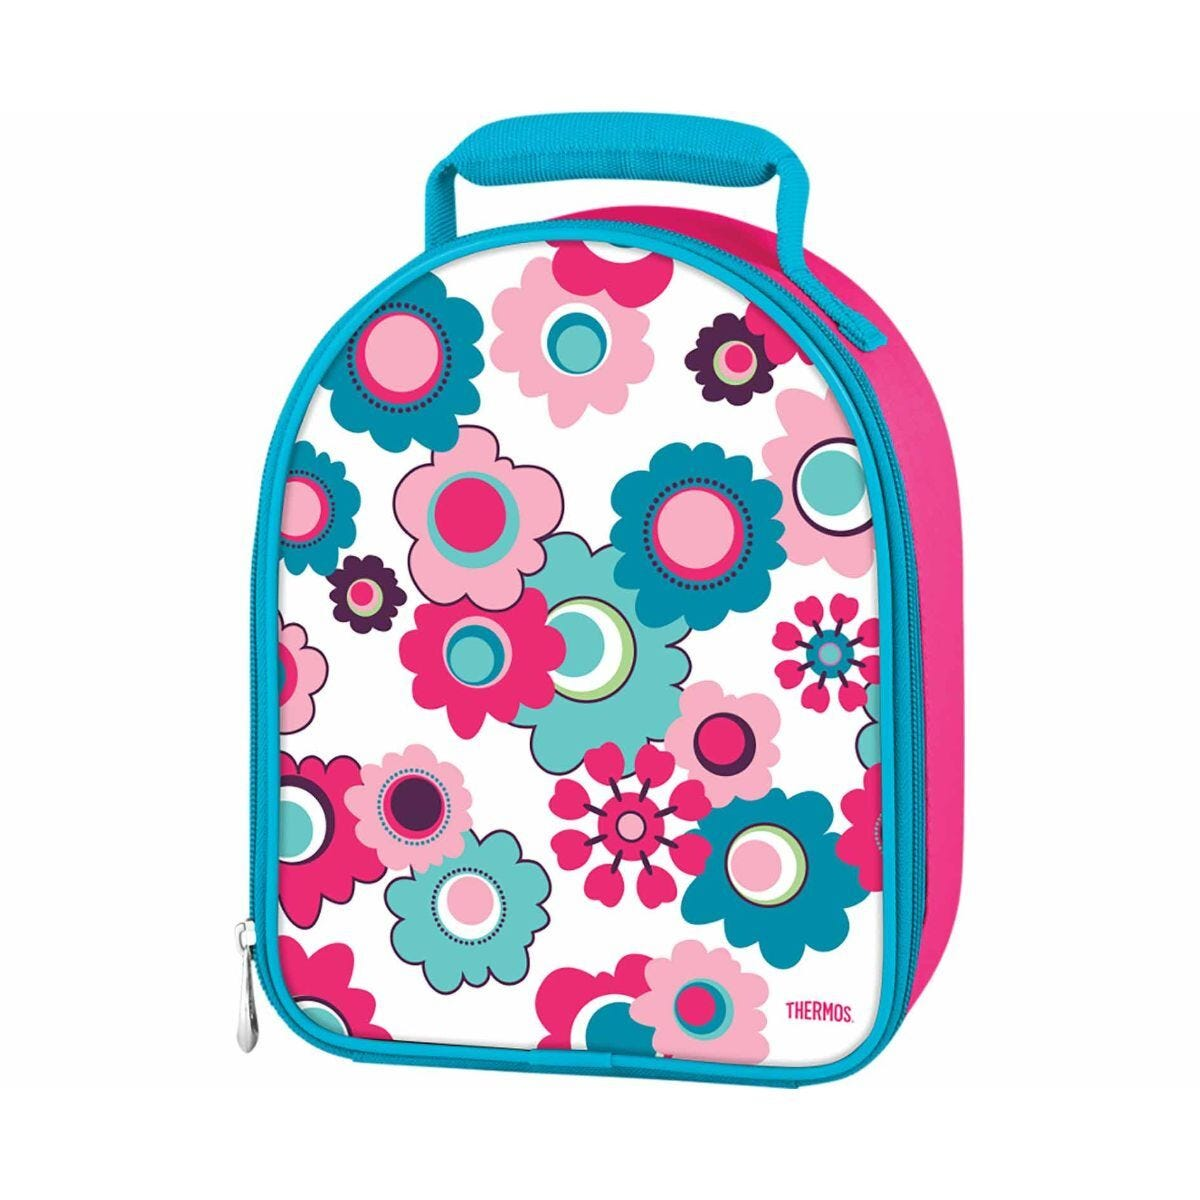 Thermos Kids Upright Lunch Bag Floral